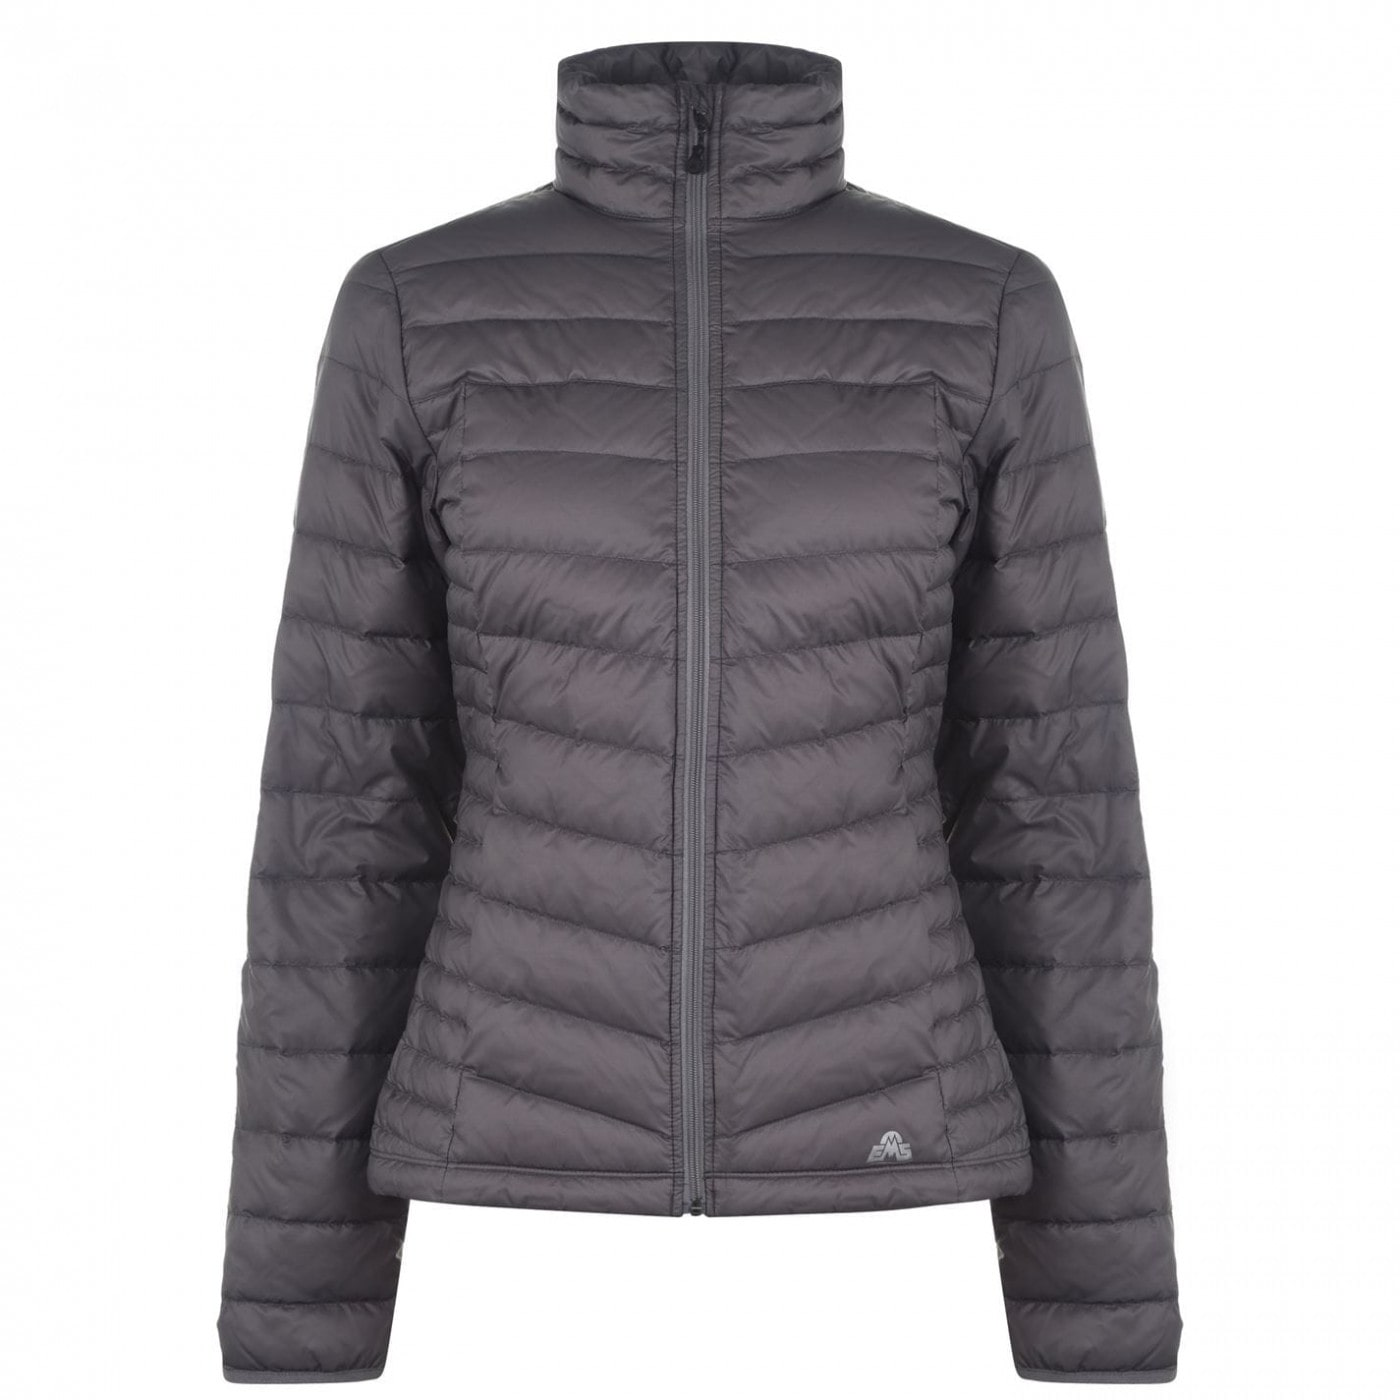 Eastern Mountain Sports Featherpack Jacket Womens